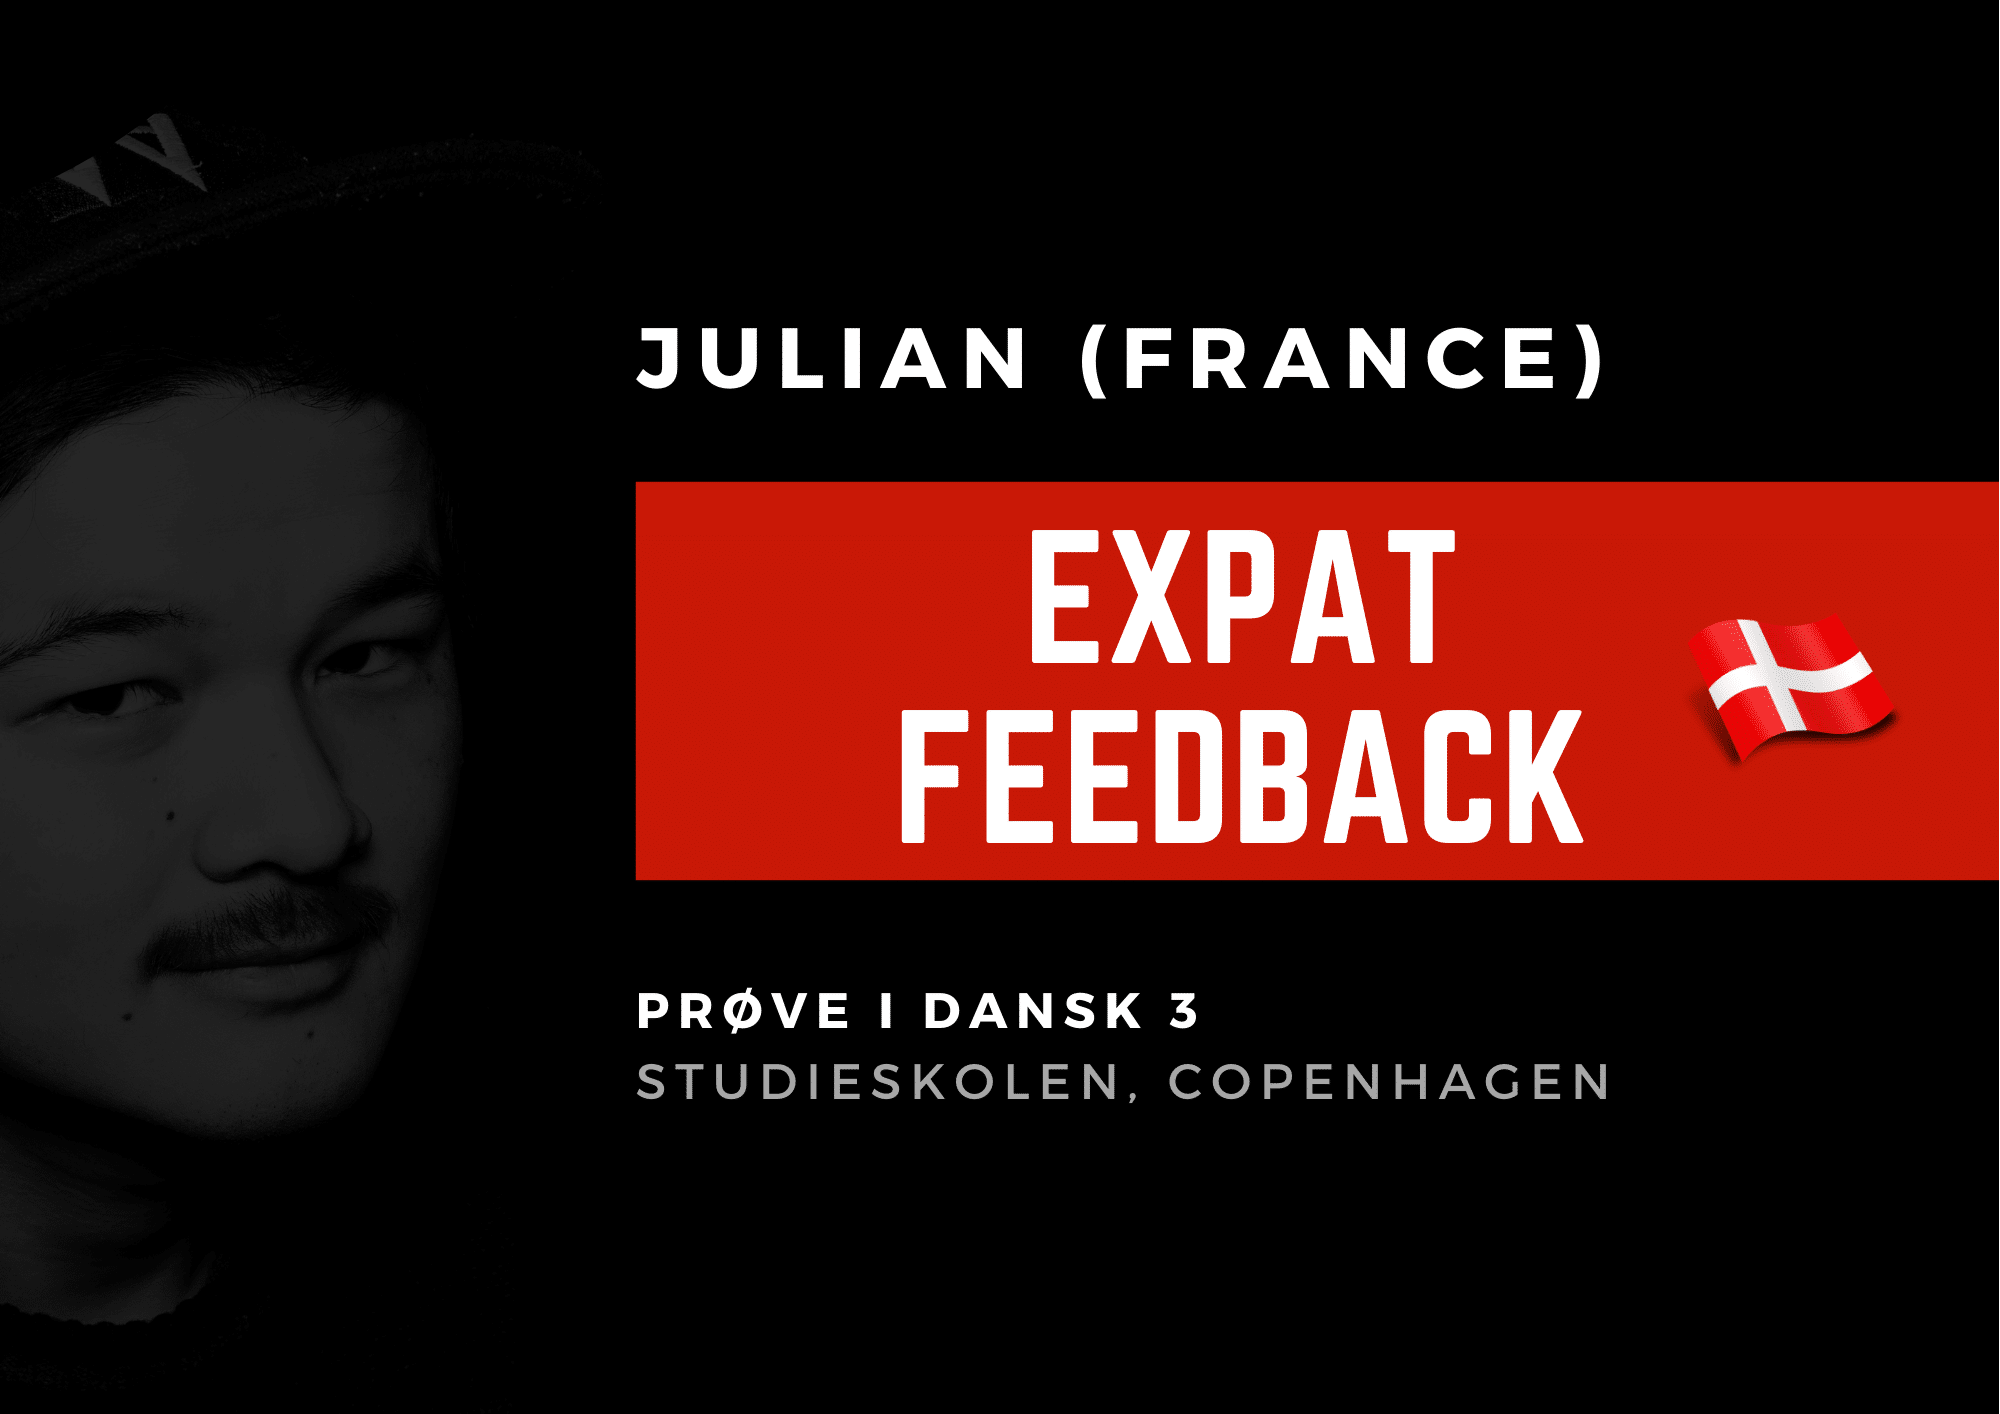 Learn Danish - Julian from France